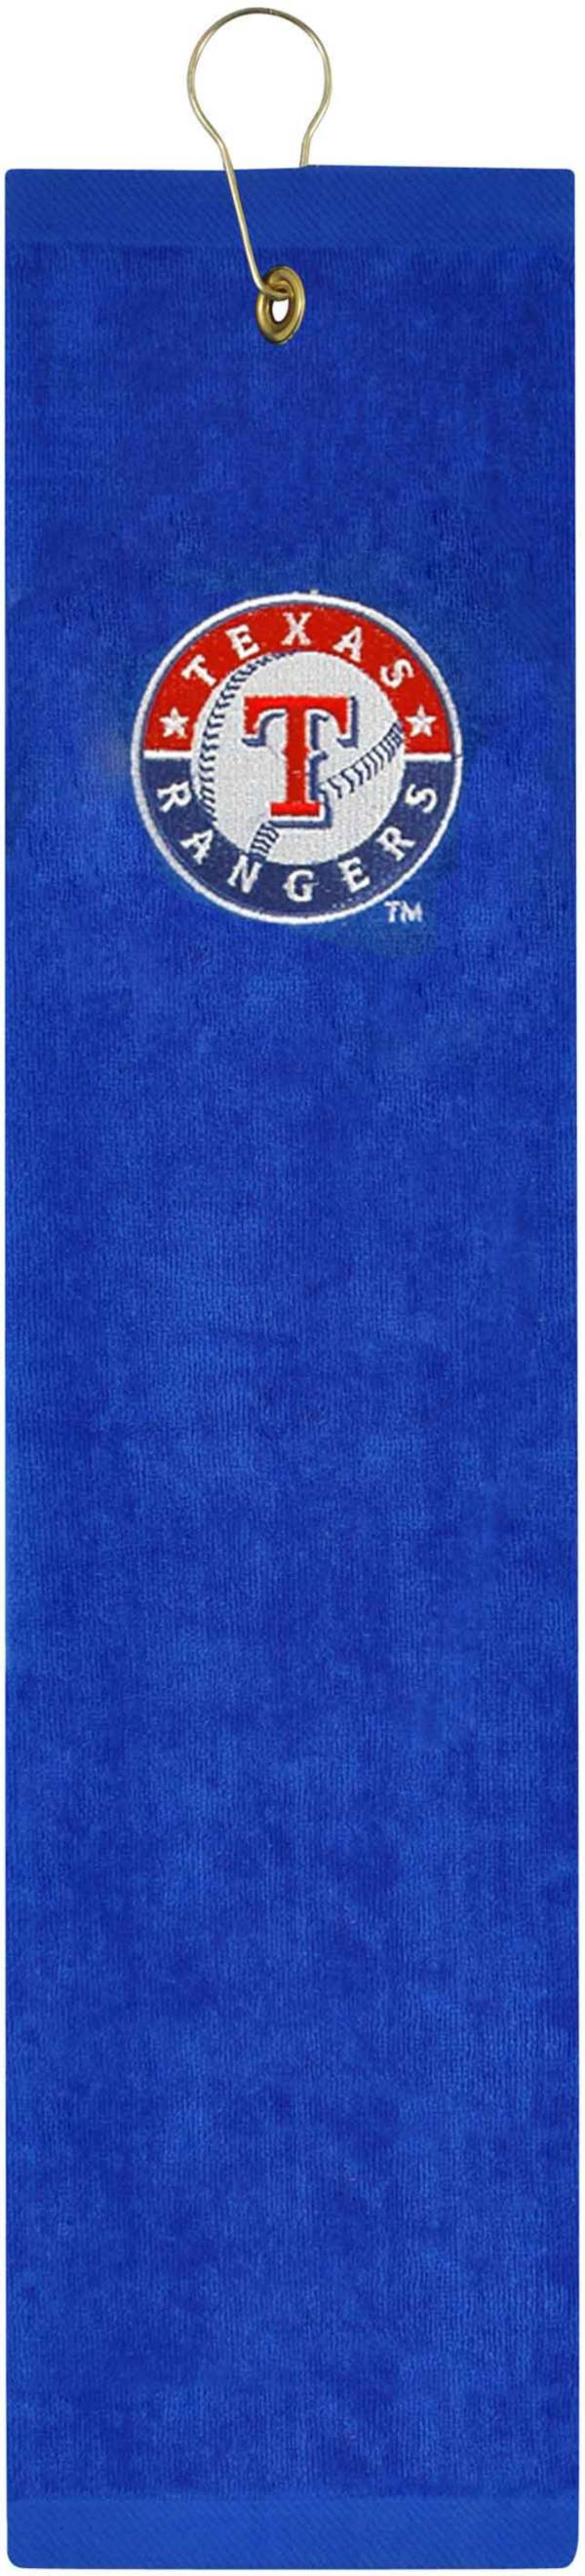 McArthur Sports New York Rangers Embroidered Tri-Fold Towel product image